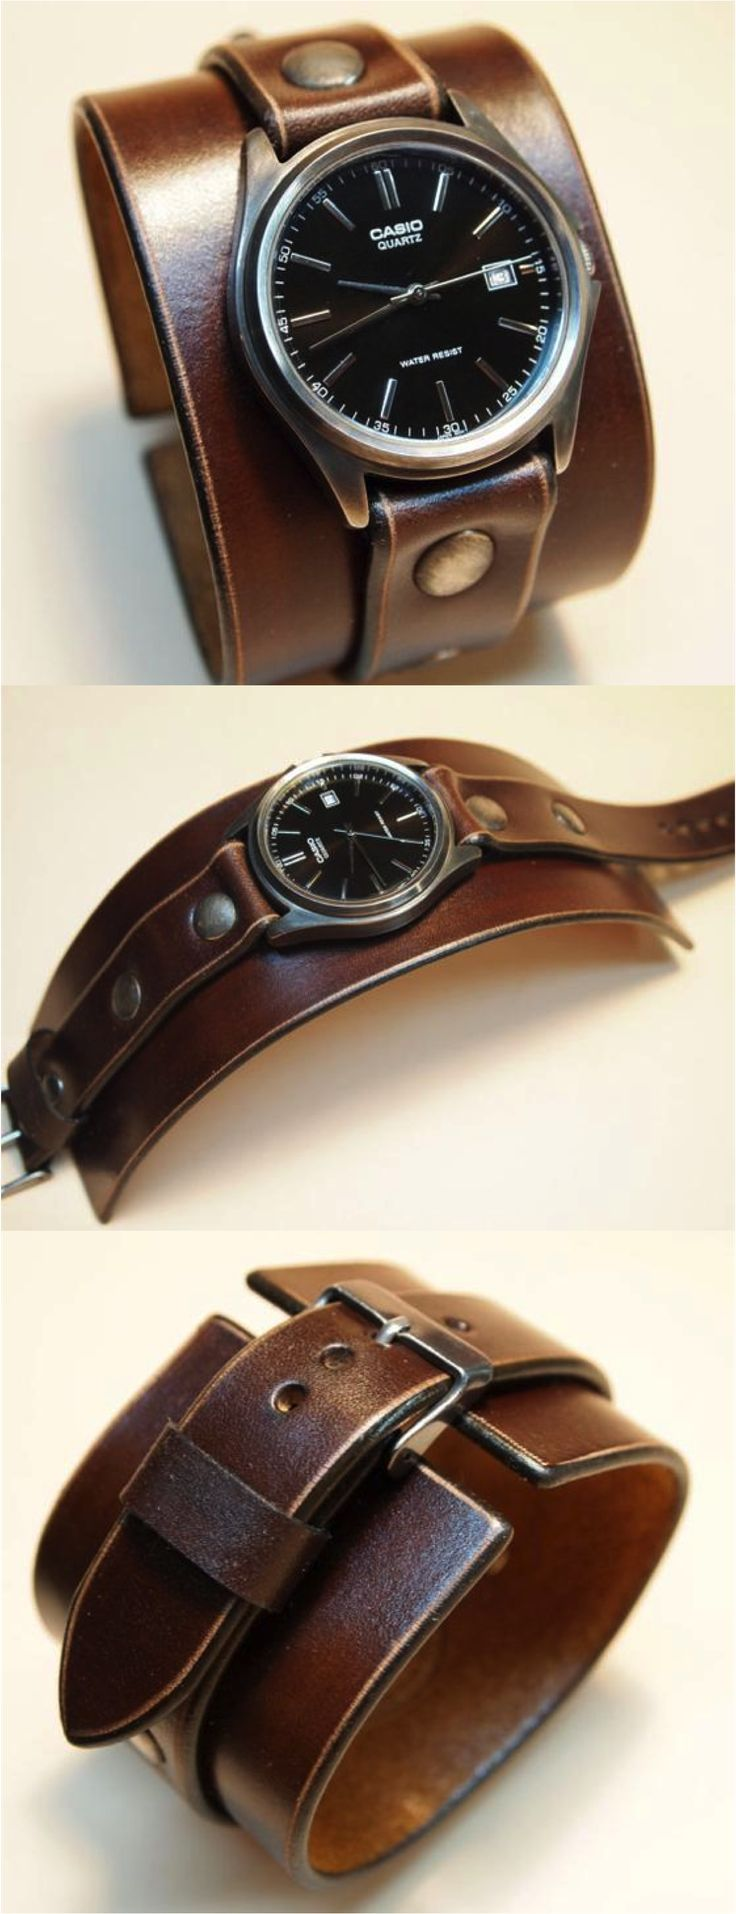 I know you secretly always wanted to be Nathan Drake from Unchartered. Now you can pretend to be him with a totally accurate replica watch! | Made on Hatch.co by independent artists